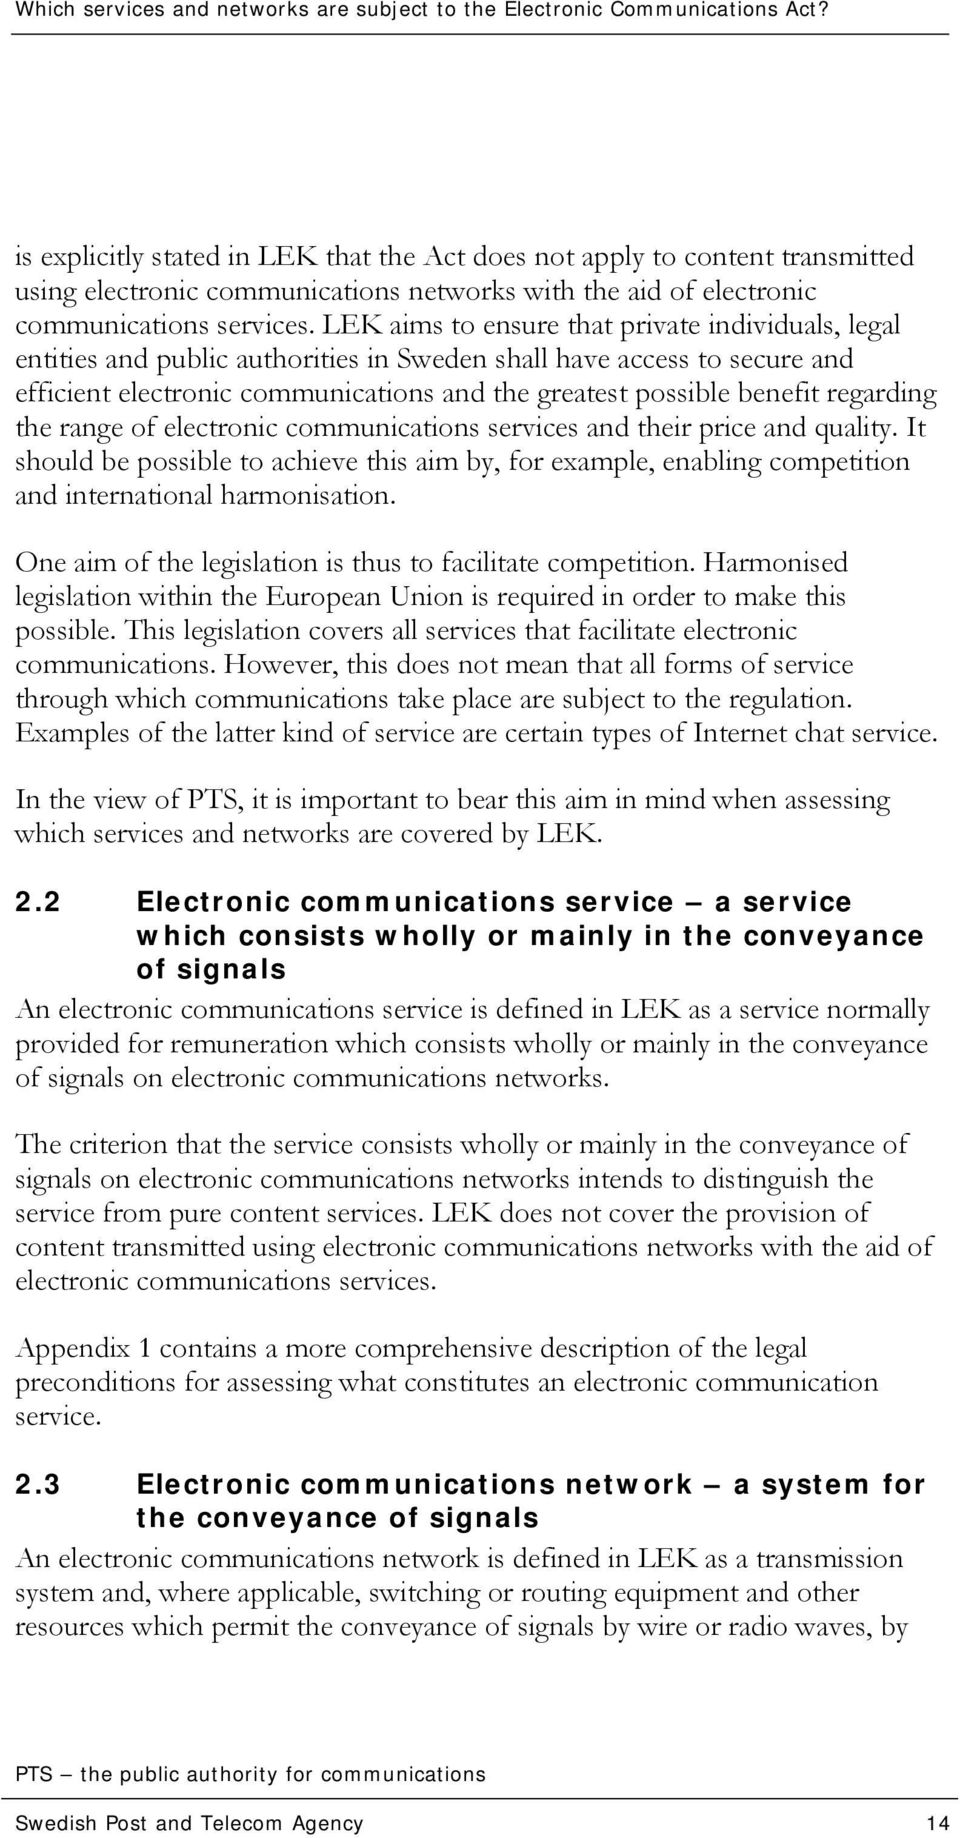 regarding the range of electronic communications services and their price and quality. It should be possible to achieve this aim by, for example, enabling competition and international harmonisation.